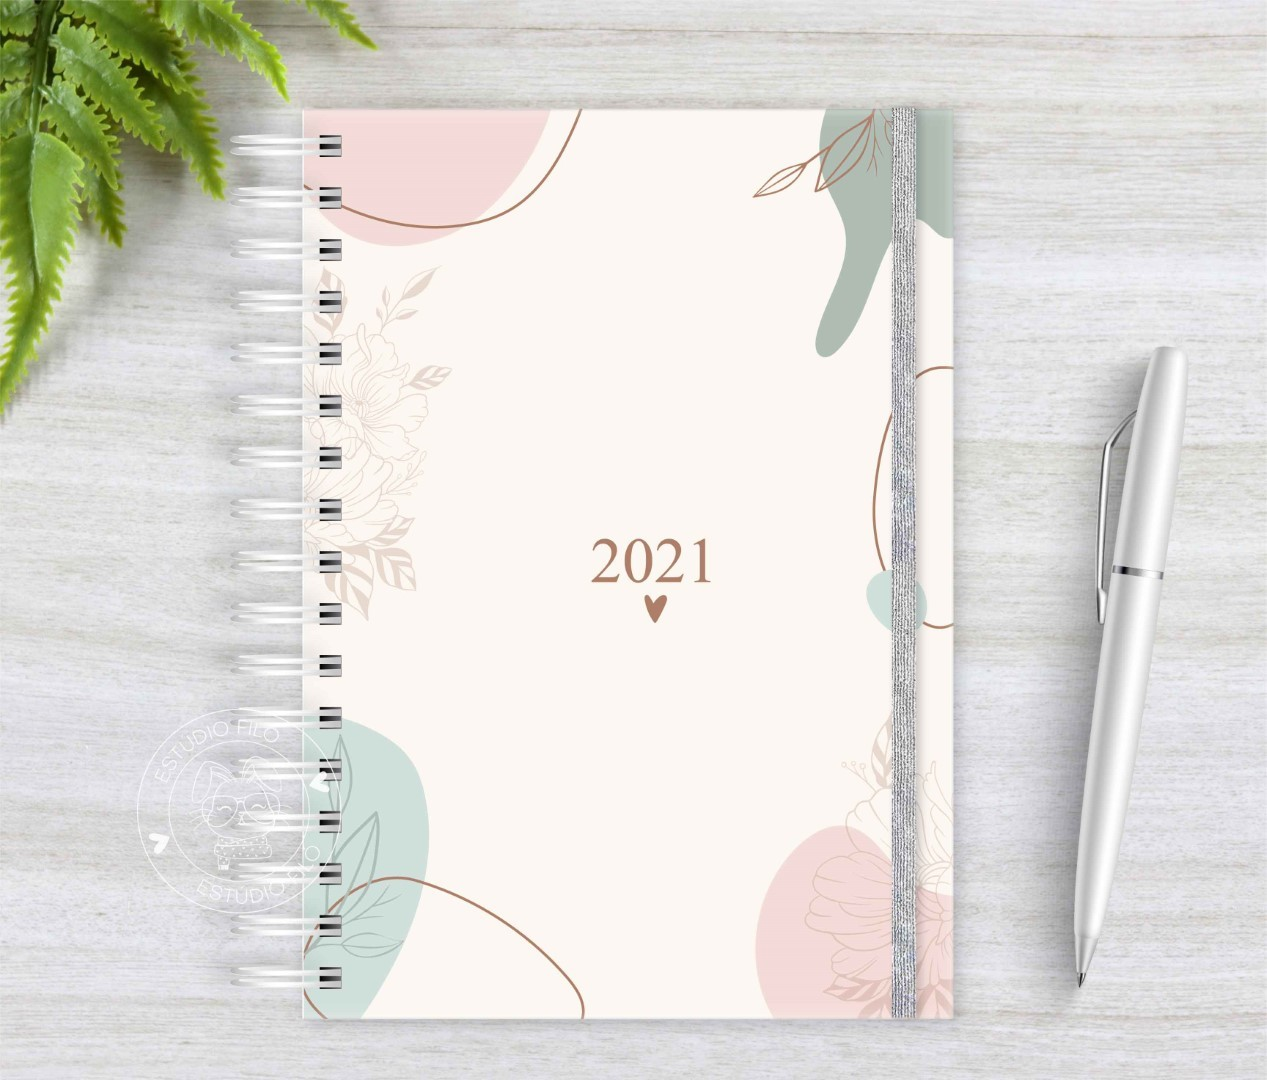 Planner Abstrato 2021